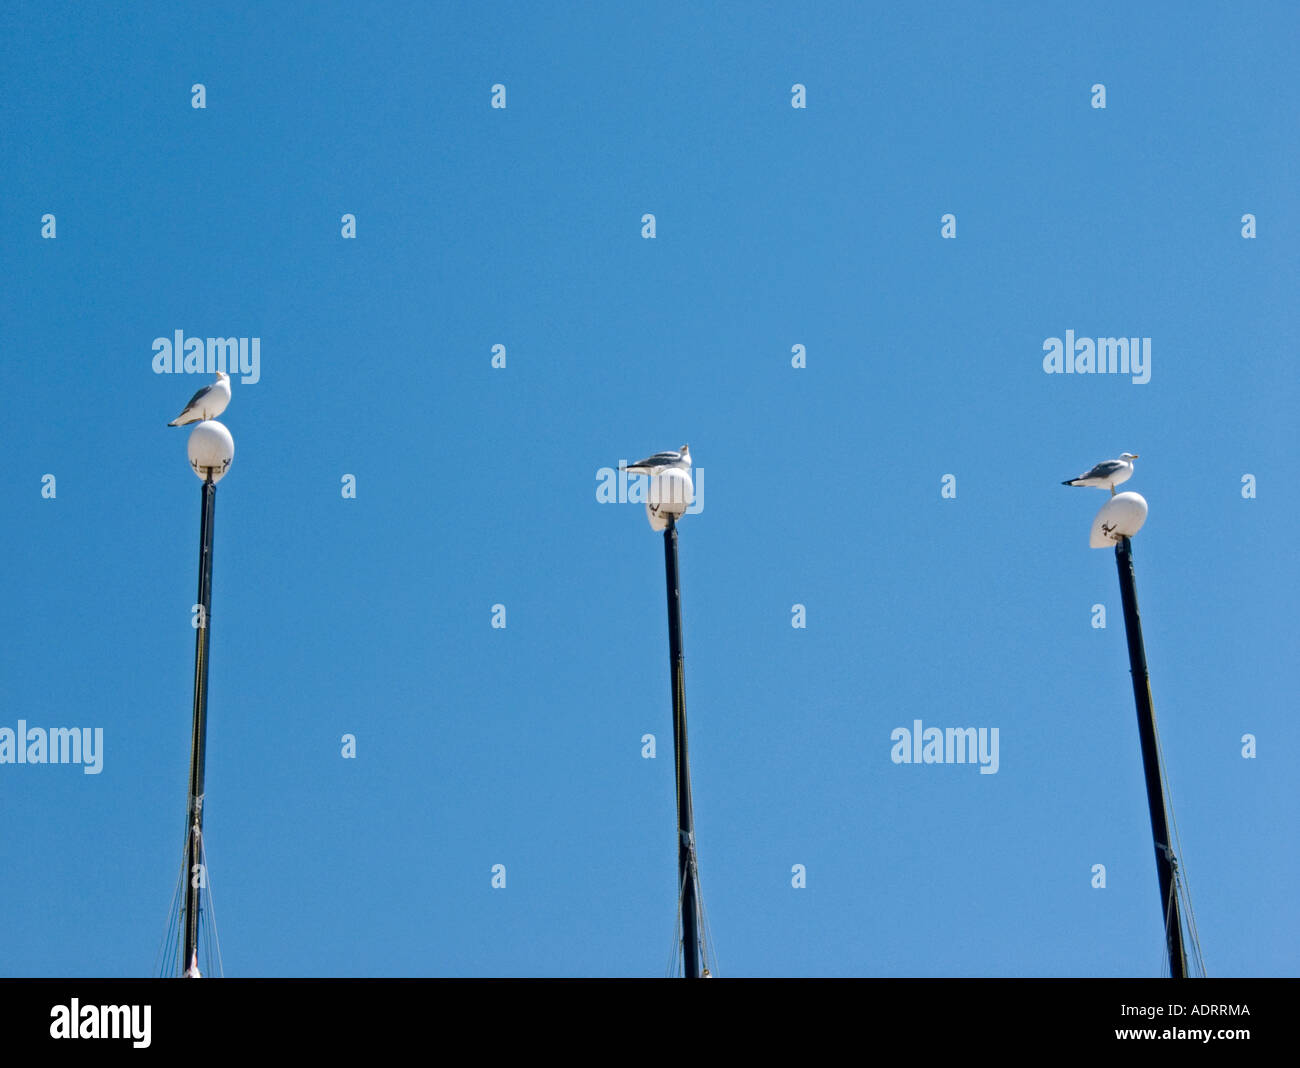 a line of three masts with seagulls perched on top - Stock Image